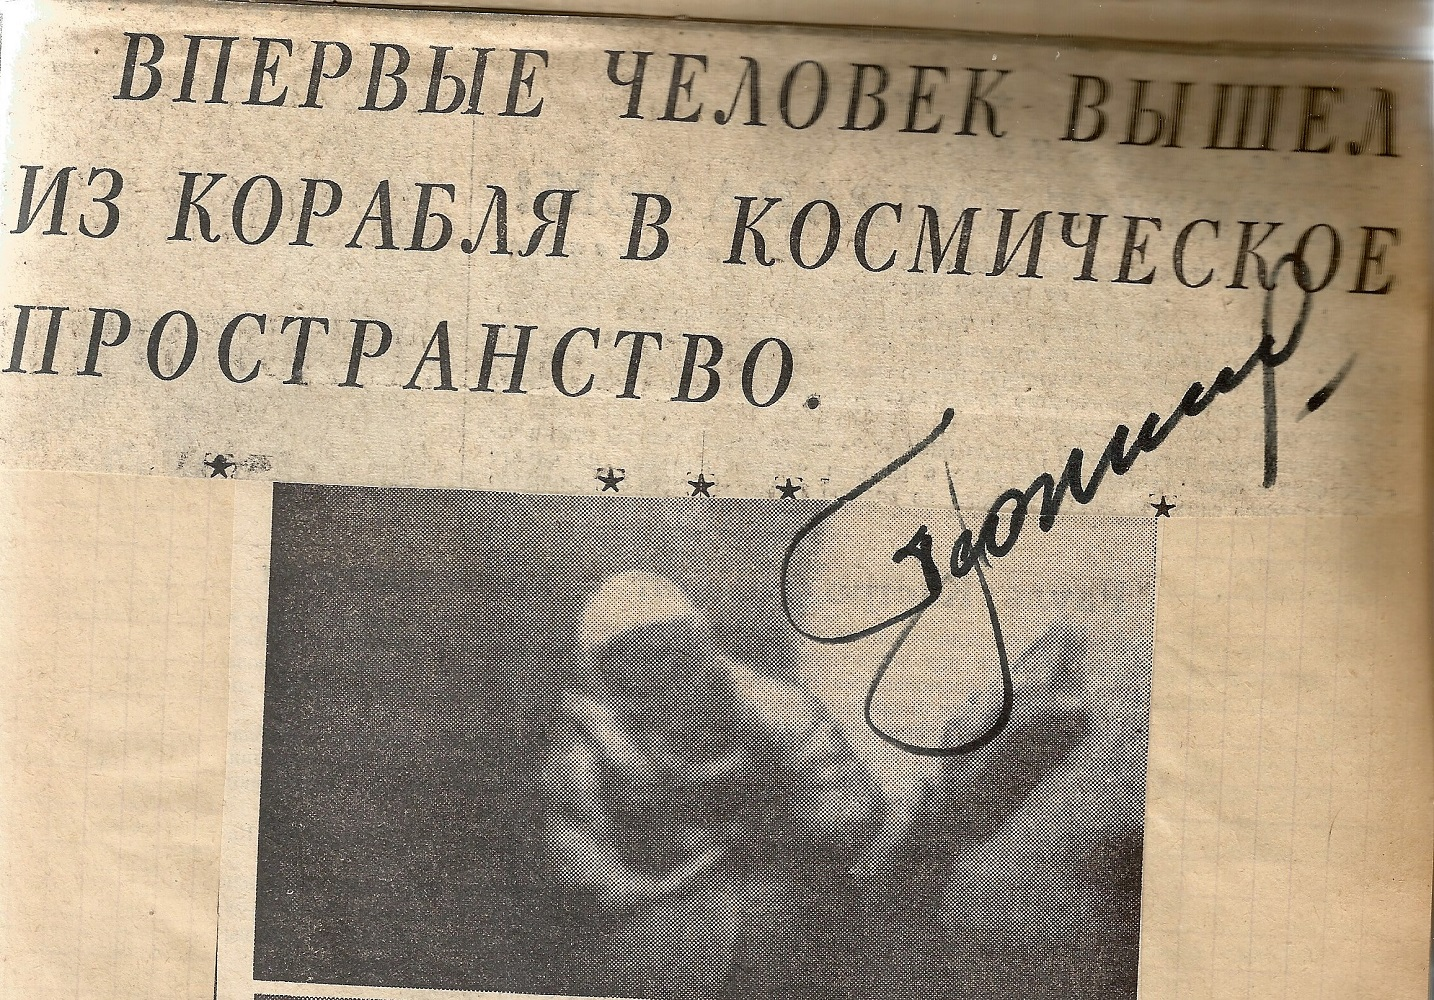 1950/60s Russian Cosmonauts multiple signed hard backed scrapbook compiled by a worker at Baikonur - Image 20 of 22